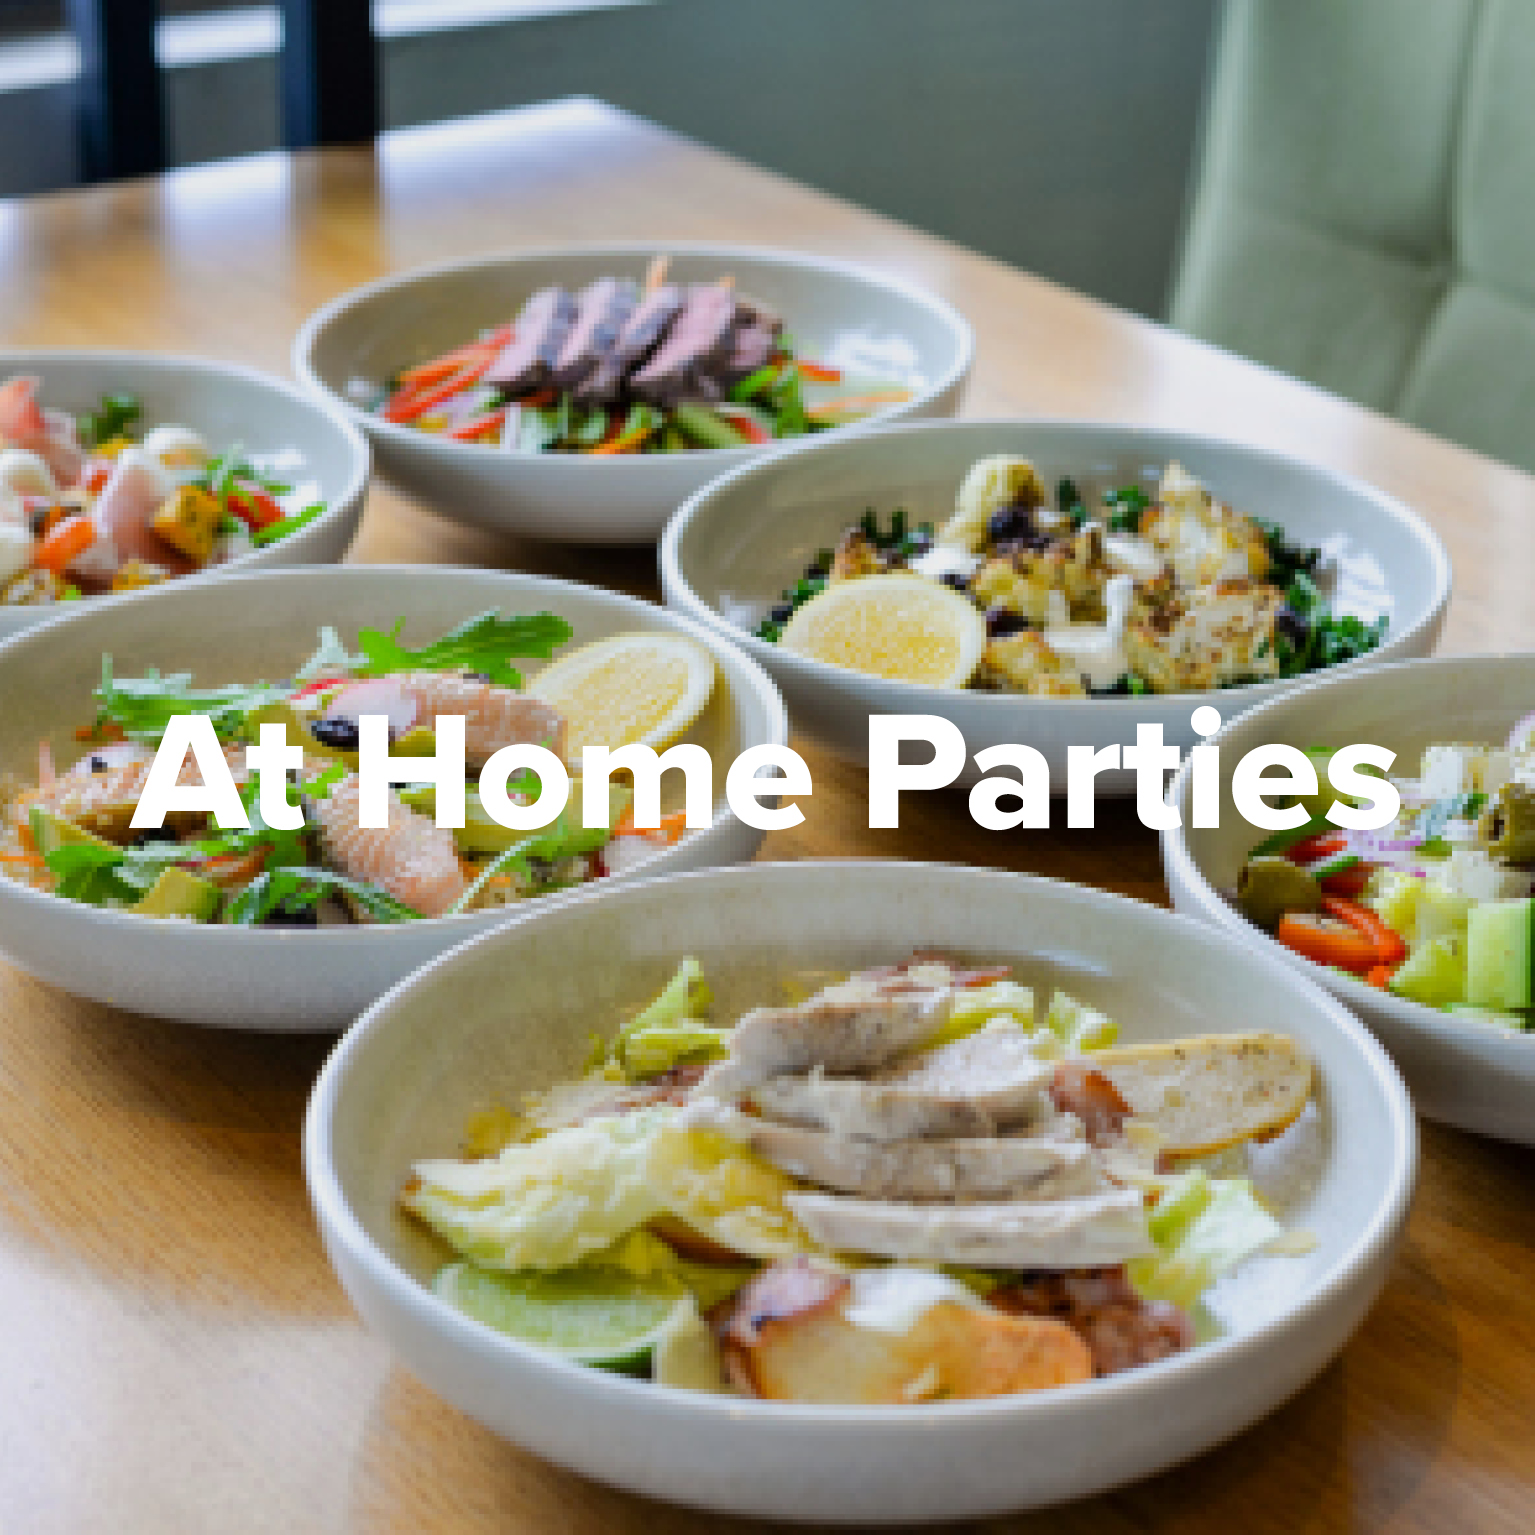 At Home Parties at Rowers on Cooks River